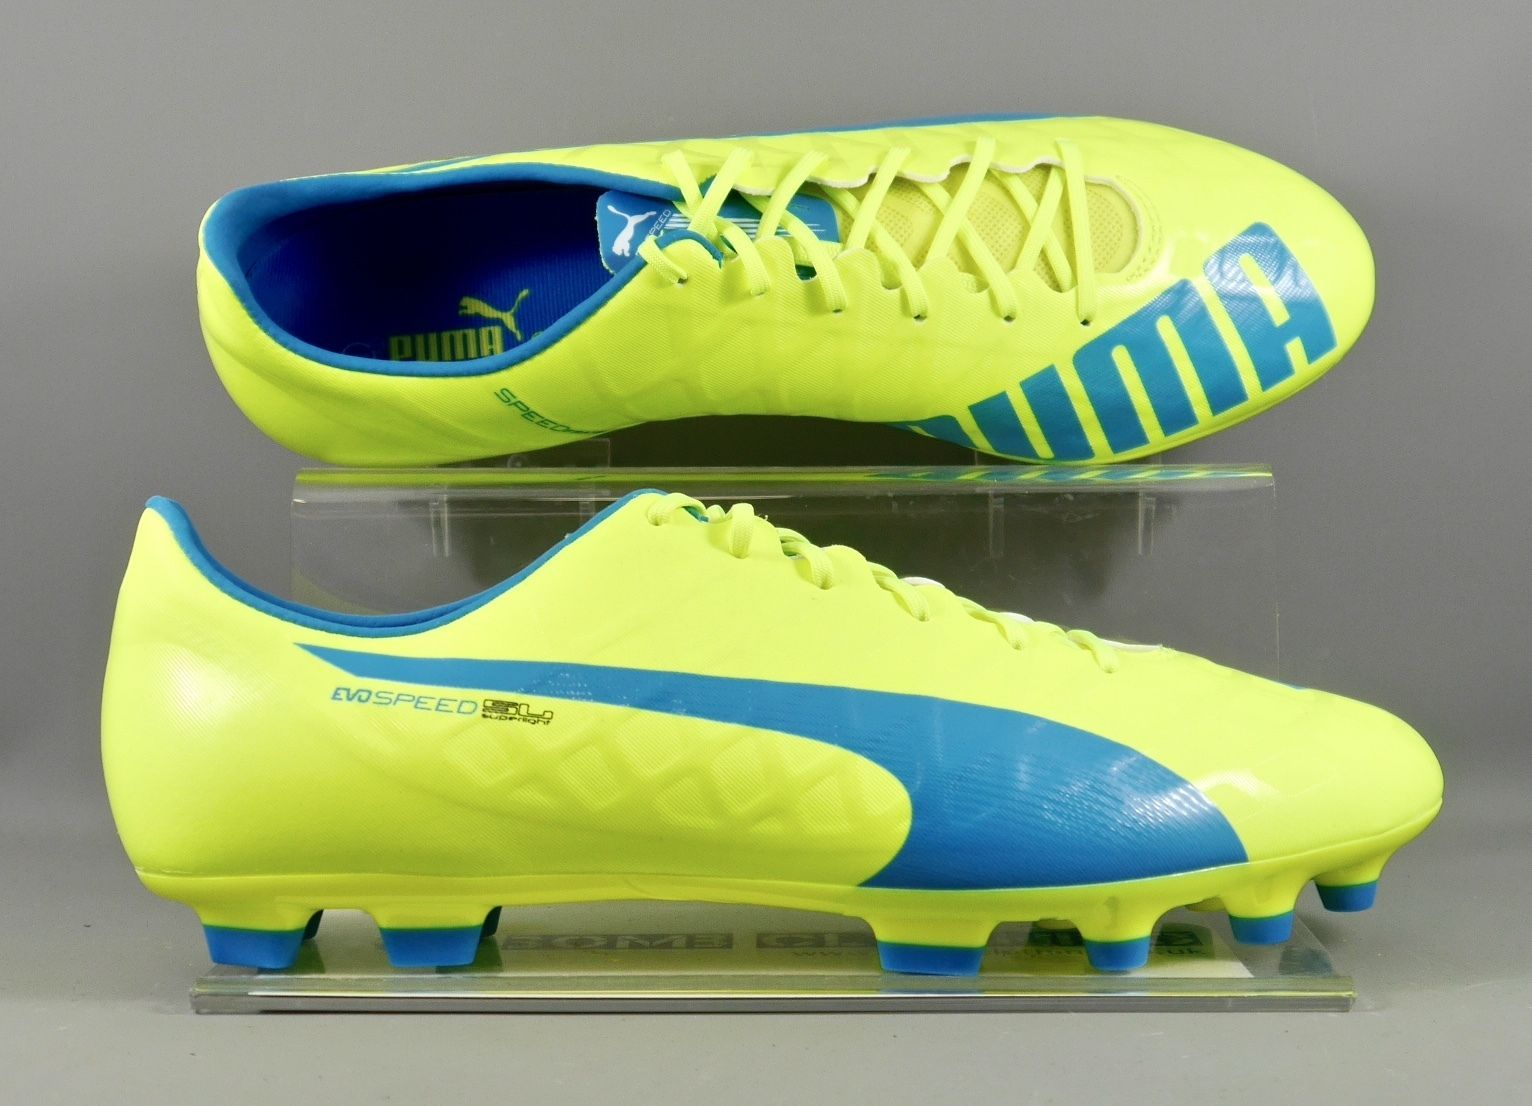 103732-01 Puma Evospeed SL-S AG super light artificial grass football boots. 43dc8b777